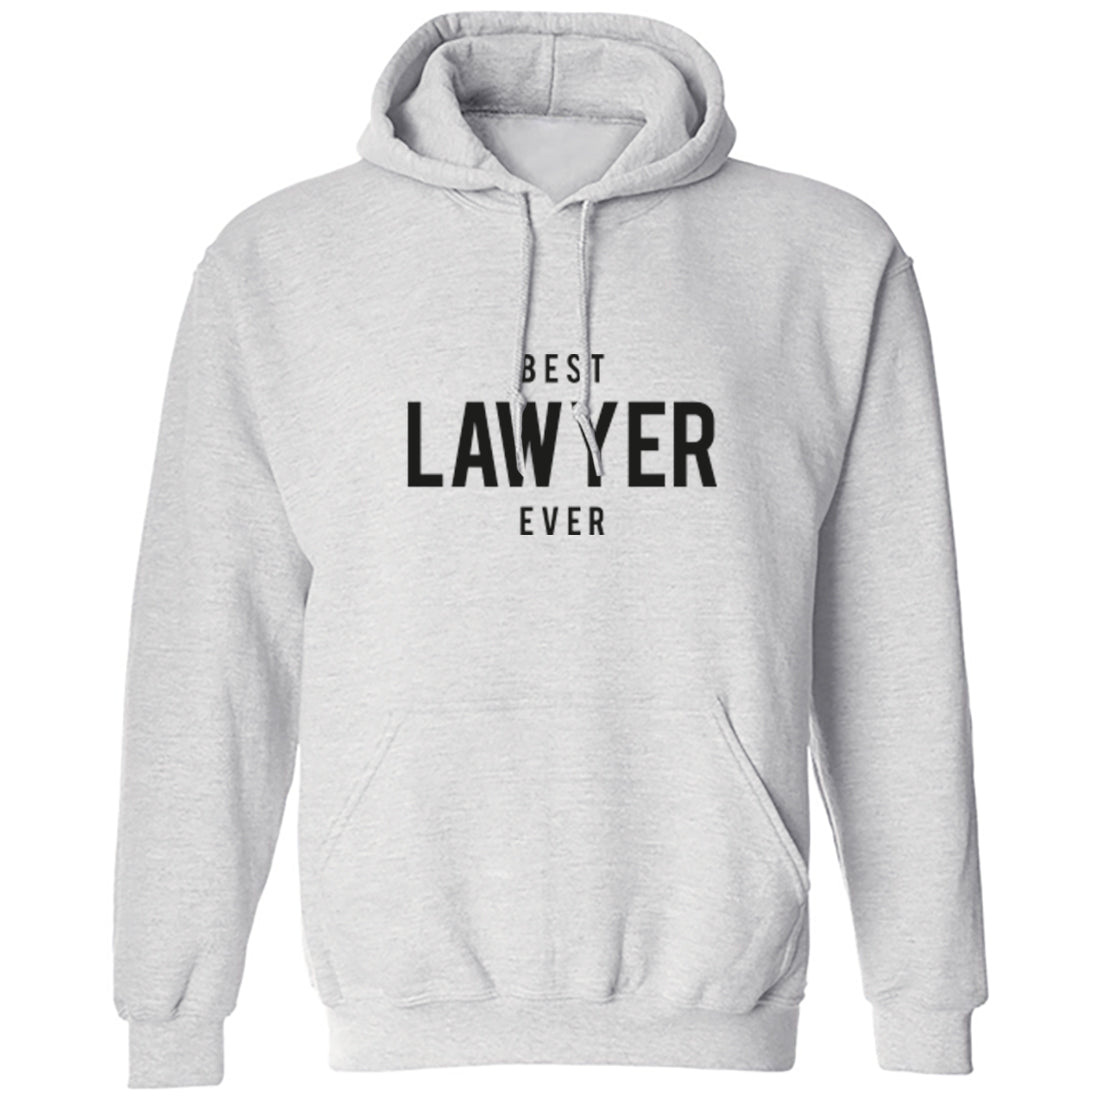 Best Lawyer Ever Unisex Hoodie K1505 - Illustrated Identity Ltd.